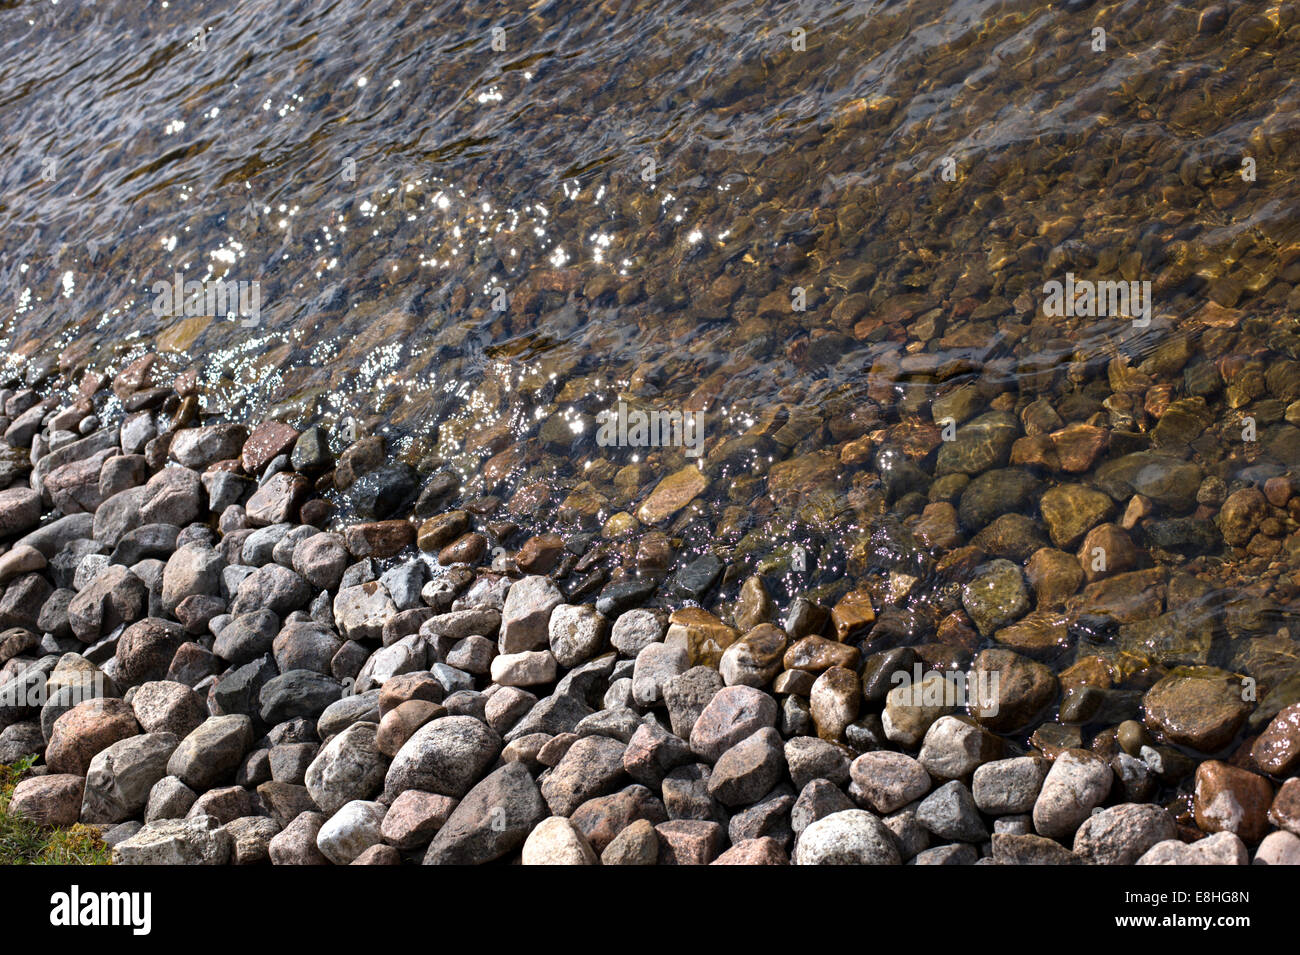 Sunlight on the water in close up as the gentle waves on Loch Builg lap the rocky shoreline - Stock Image